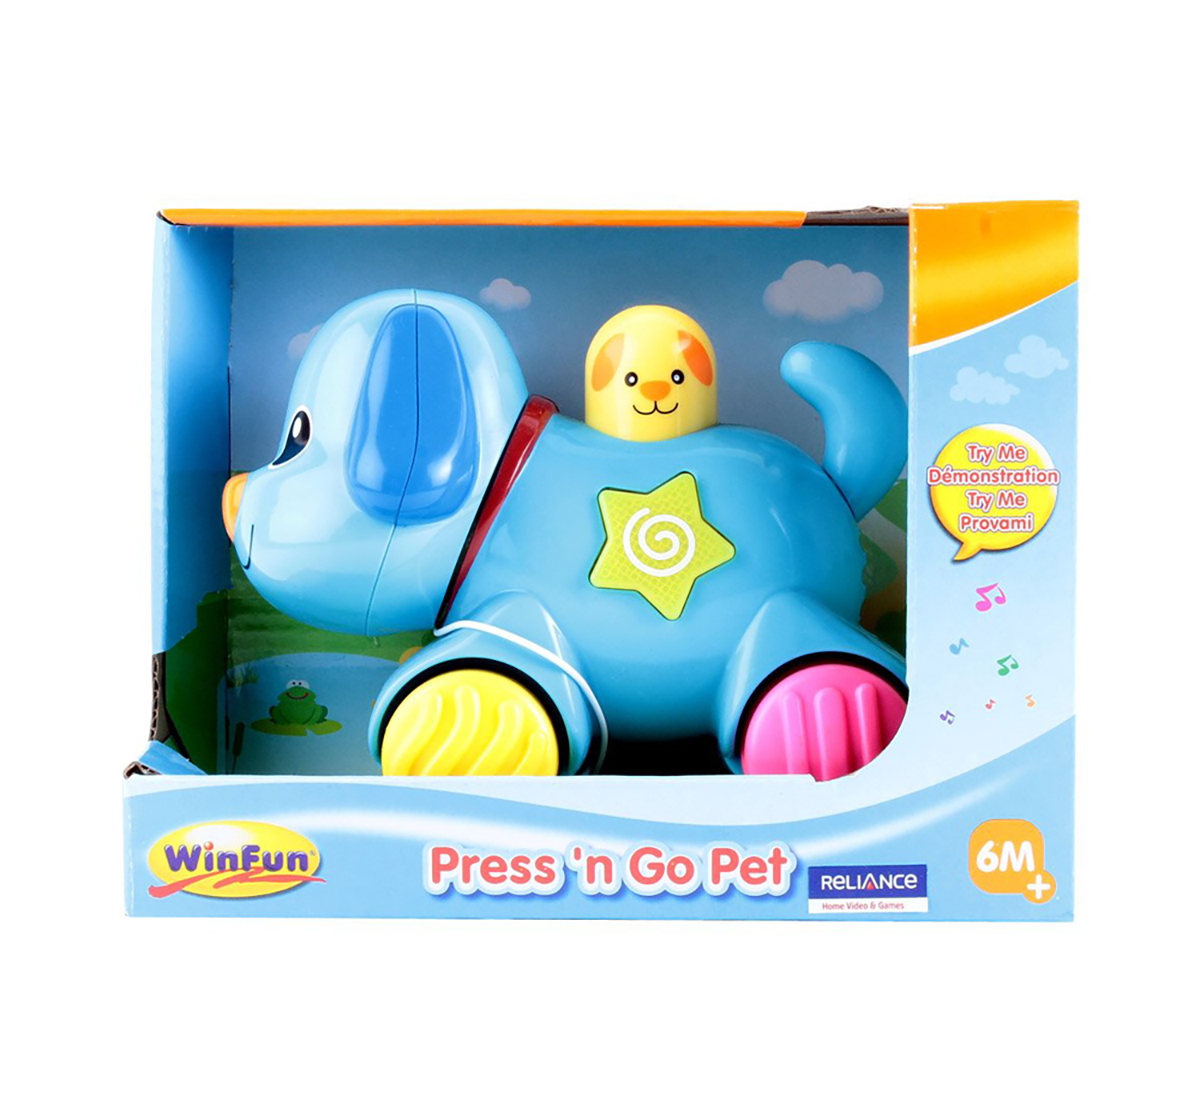 WinFun   Winfun Press And Go Pet Puppy Early Learner Toys for Kids age 4Y+